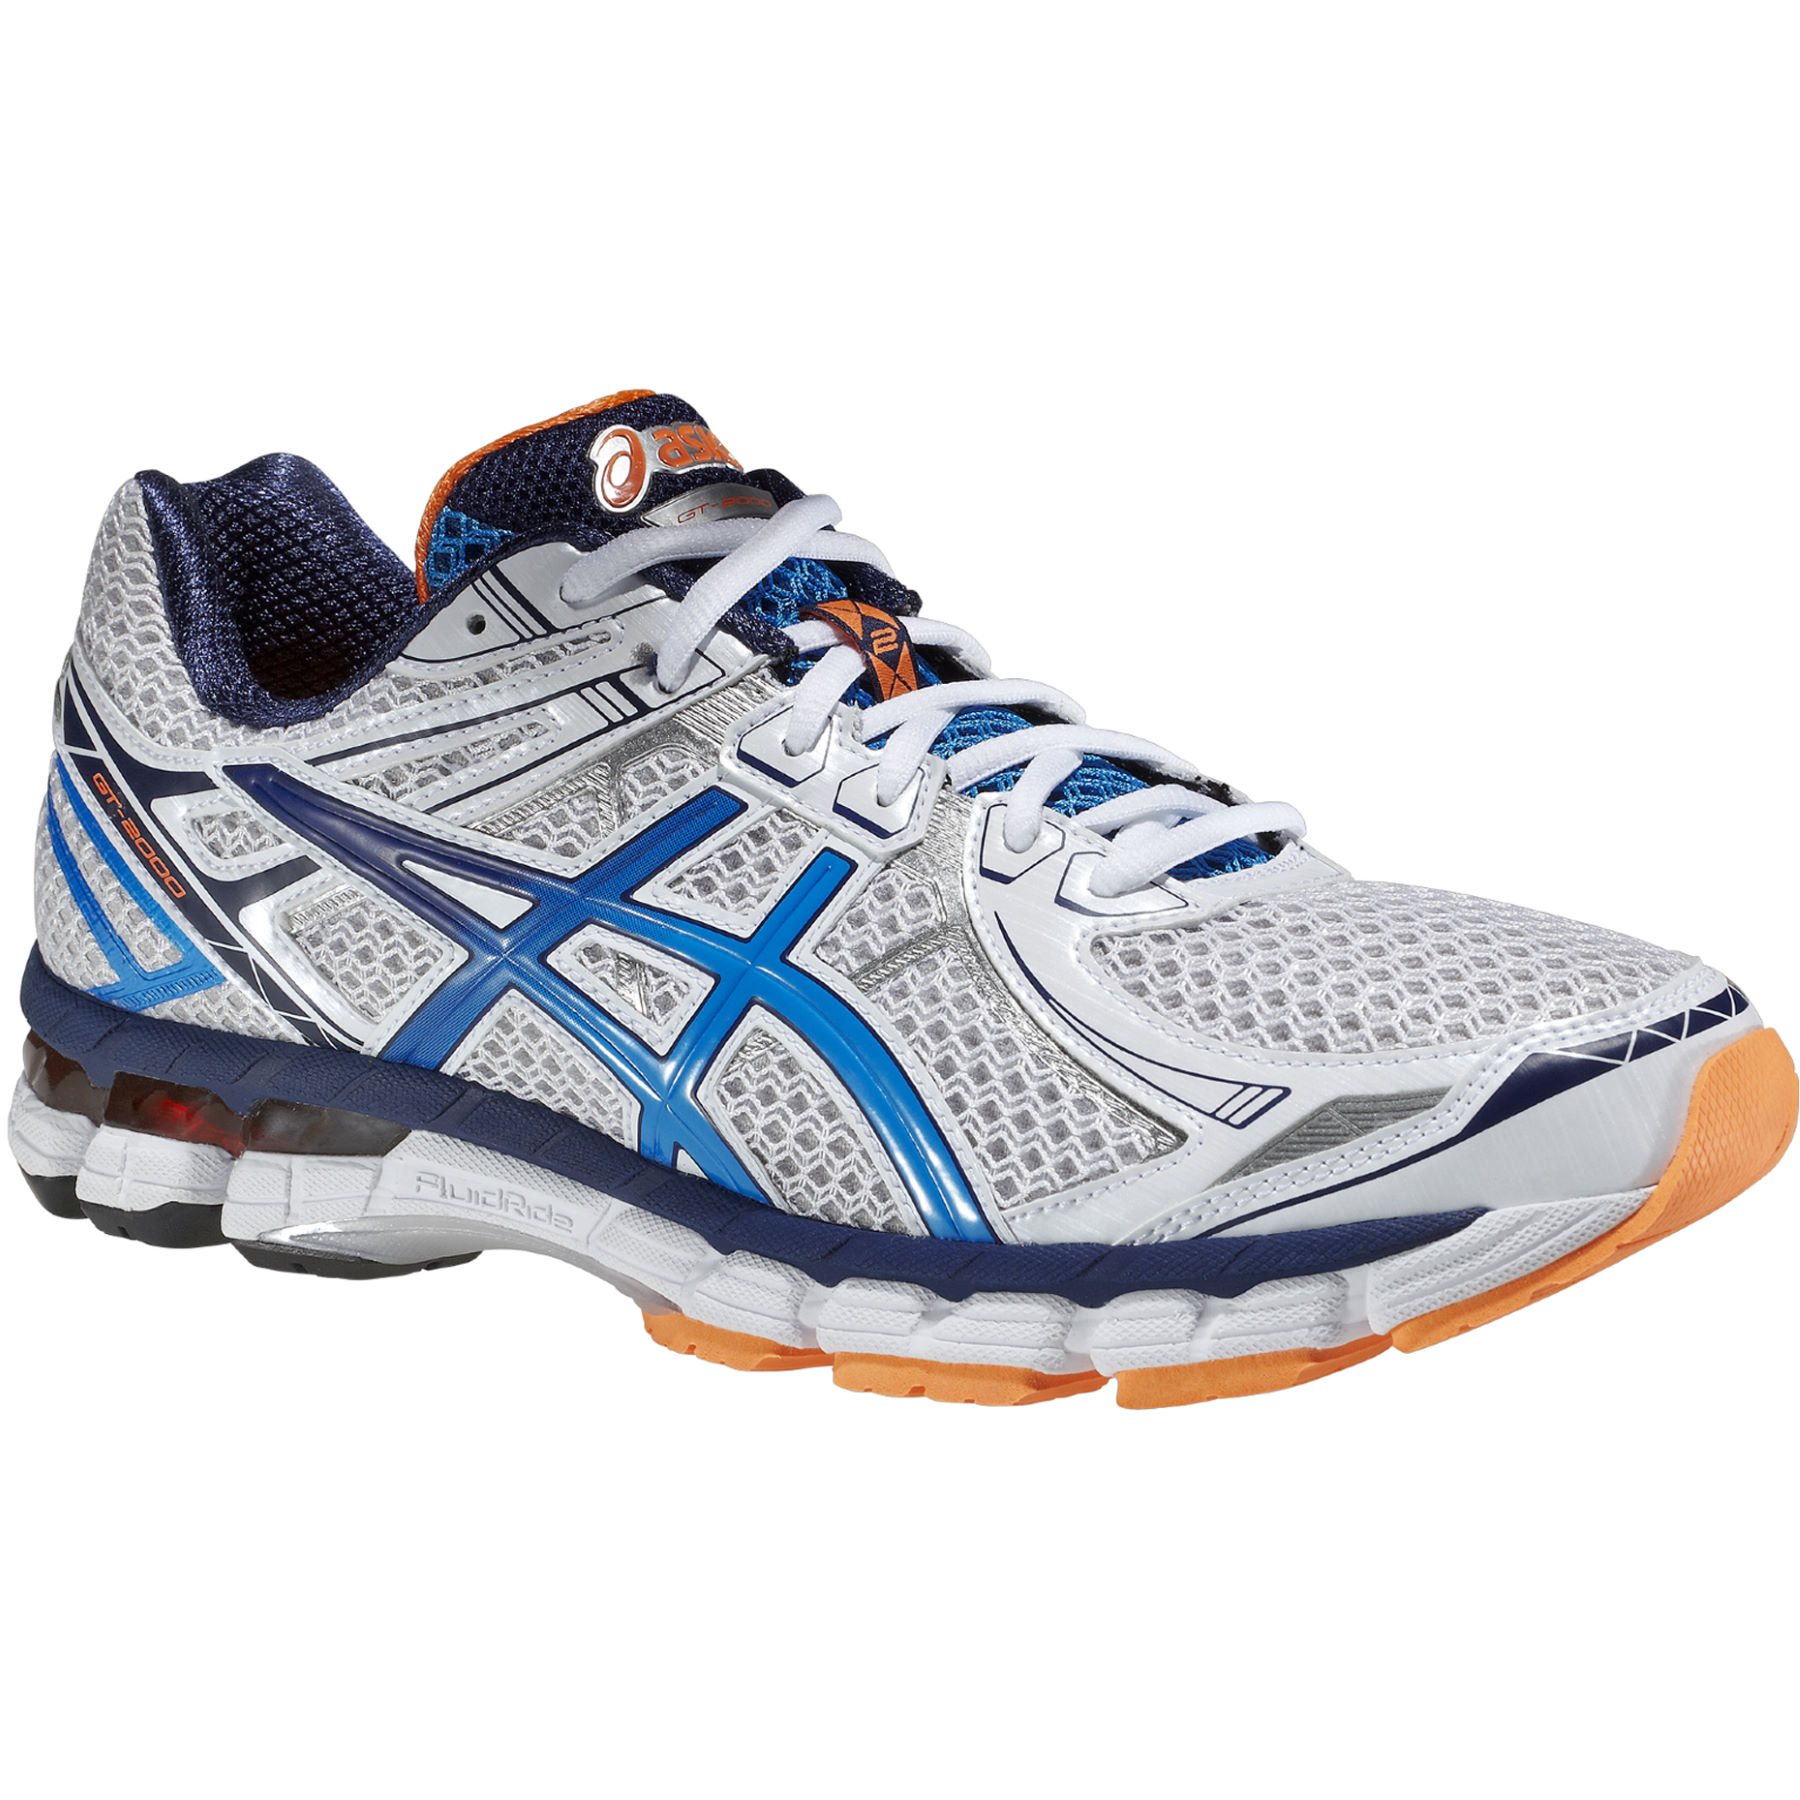 Cheap Asics Running Shoes Online Uk